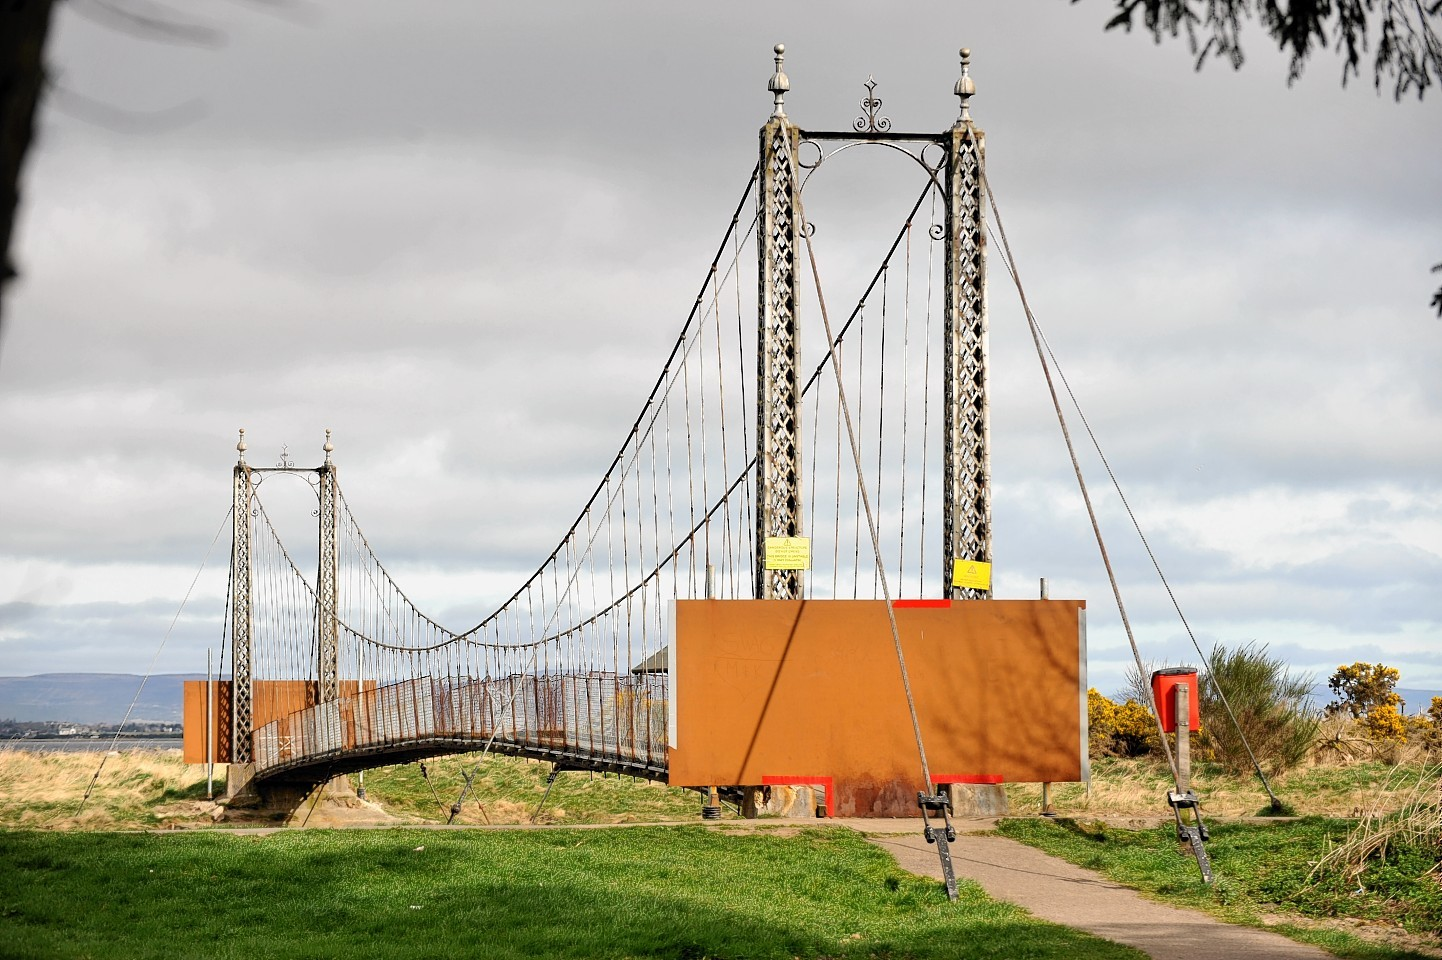 The Alexandra Bridge in Tain needs to be repaired